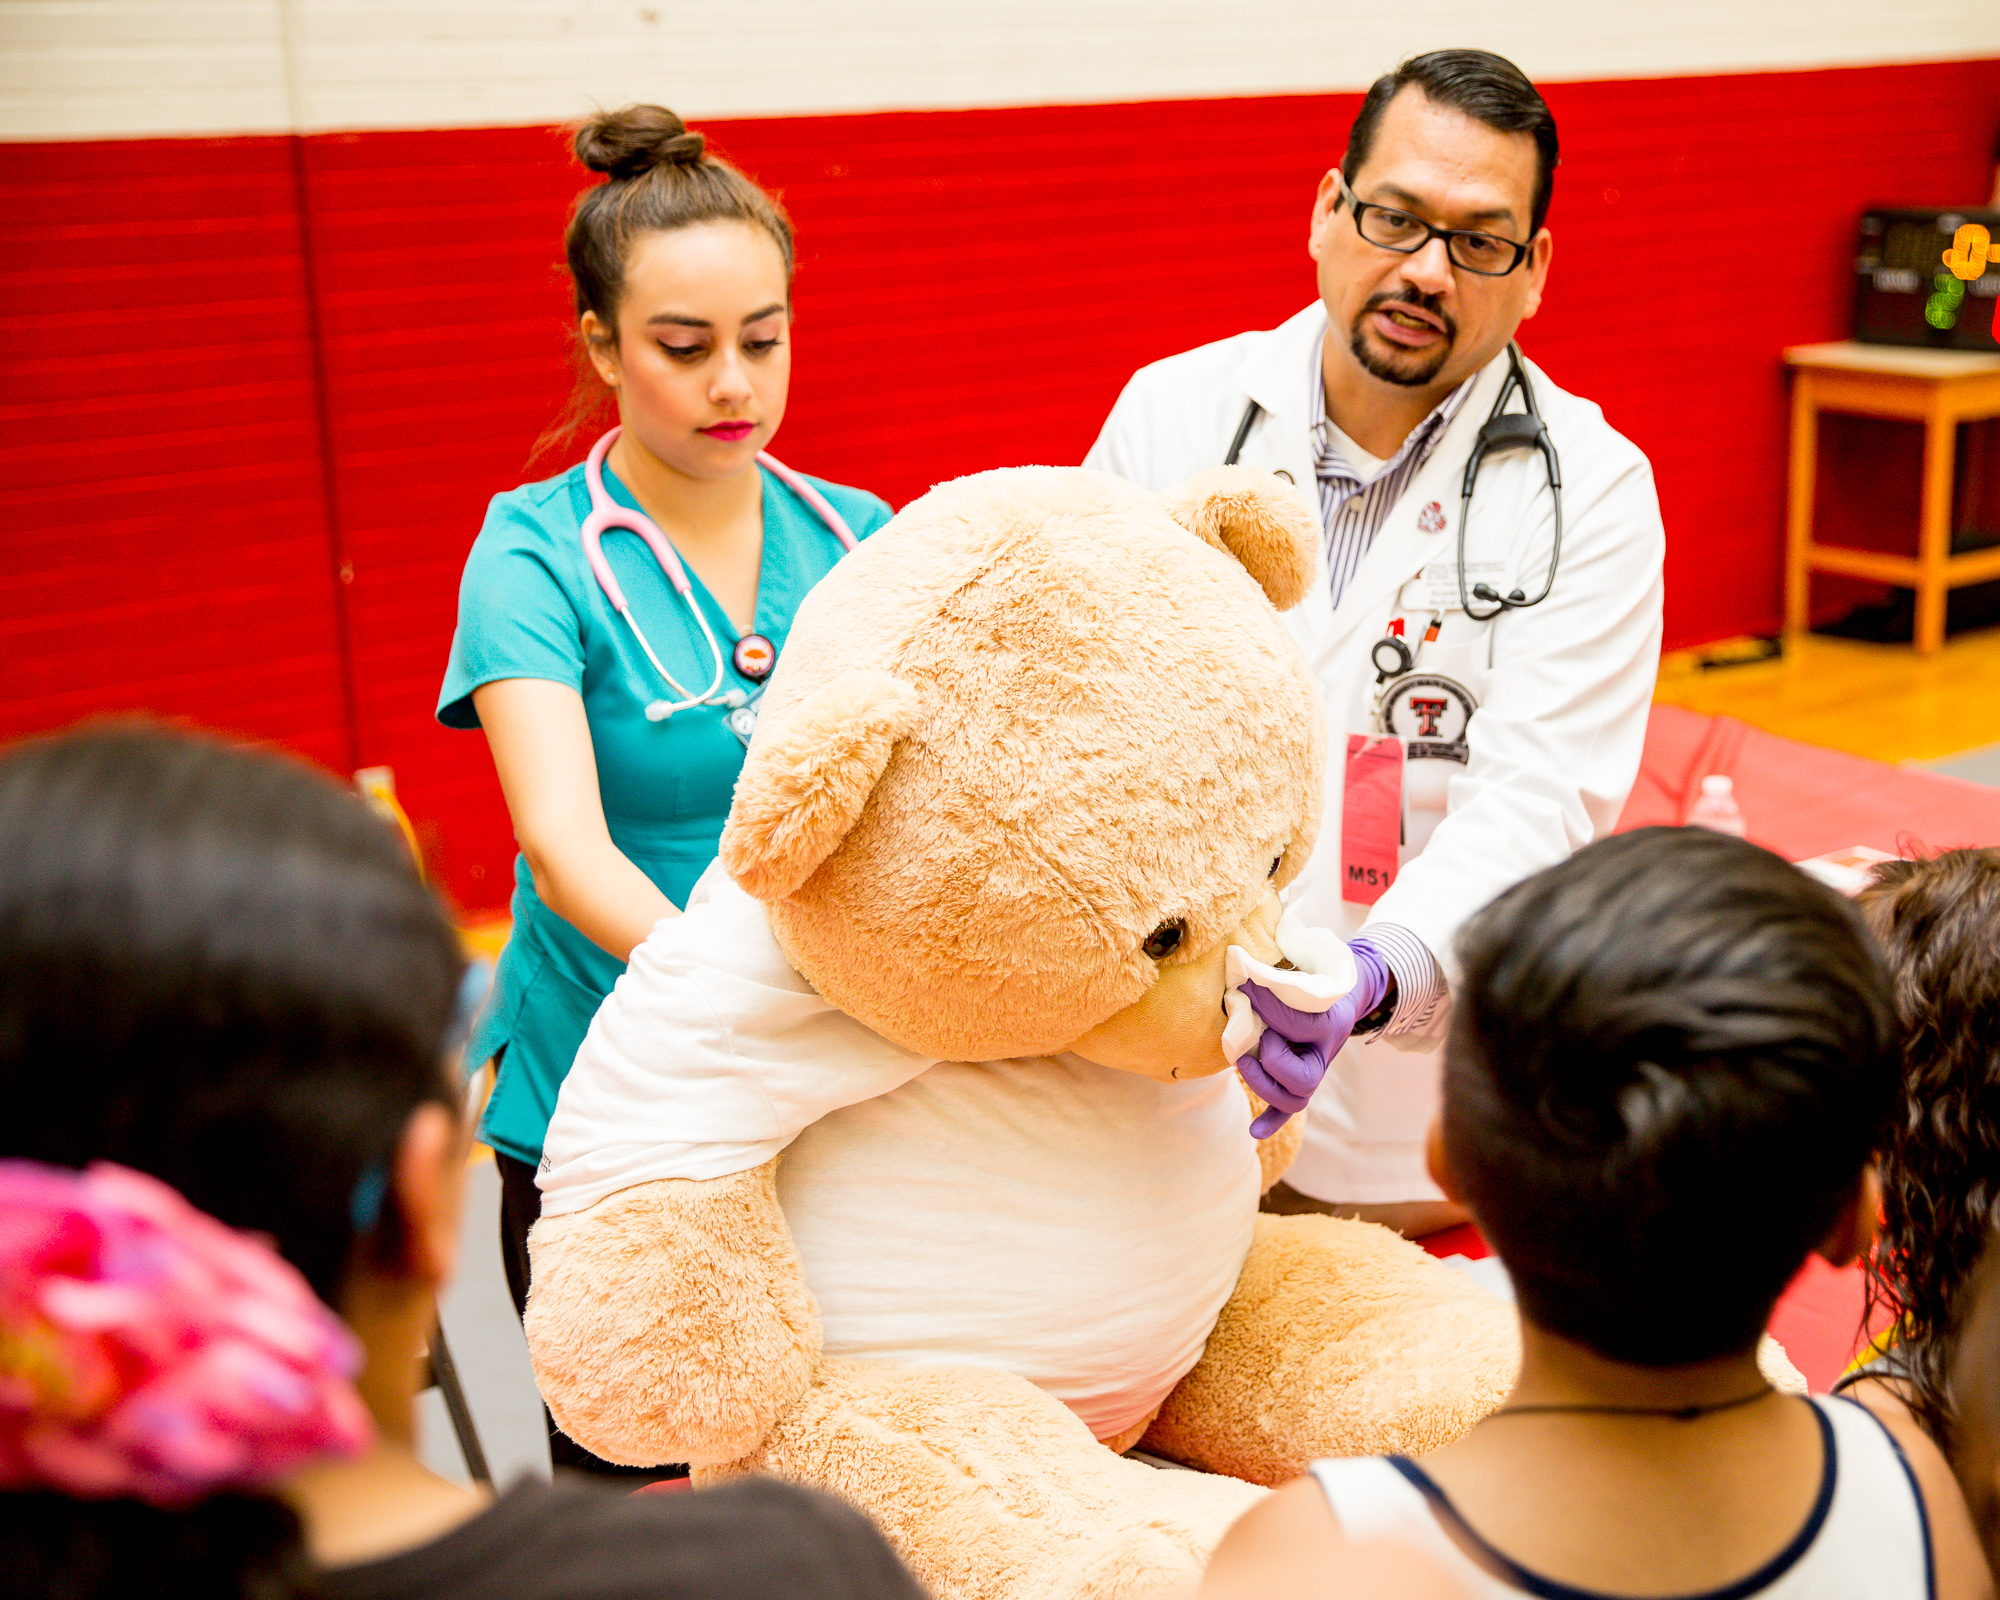 5th Graders Learn About Care at Teddy Bear Clinic